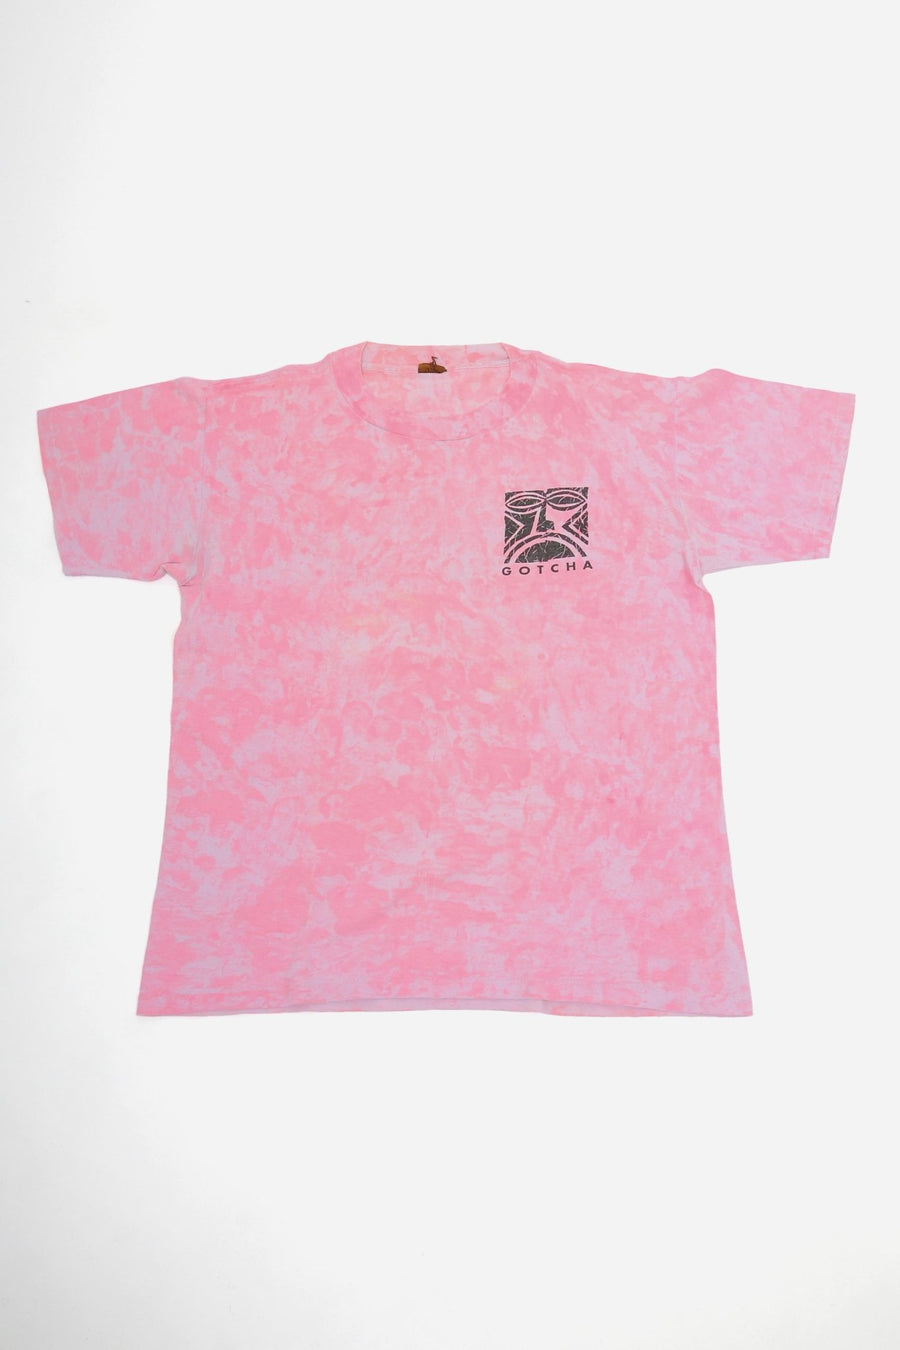 T-shirt Gotcha Tie & Dye - WASTED PARIS